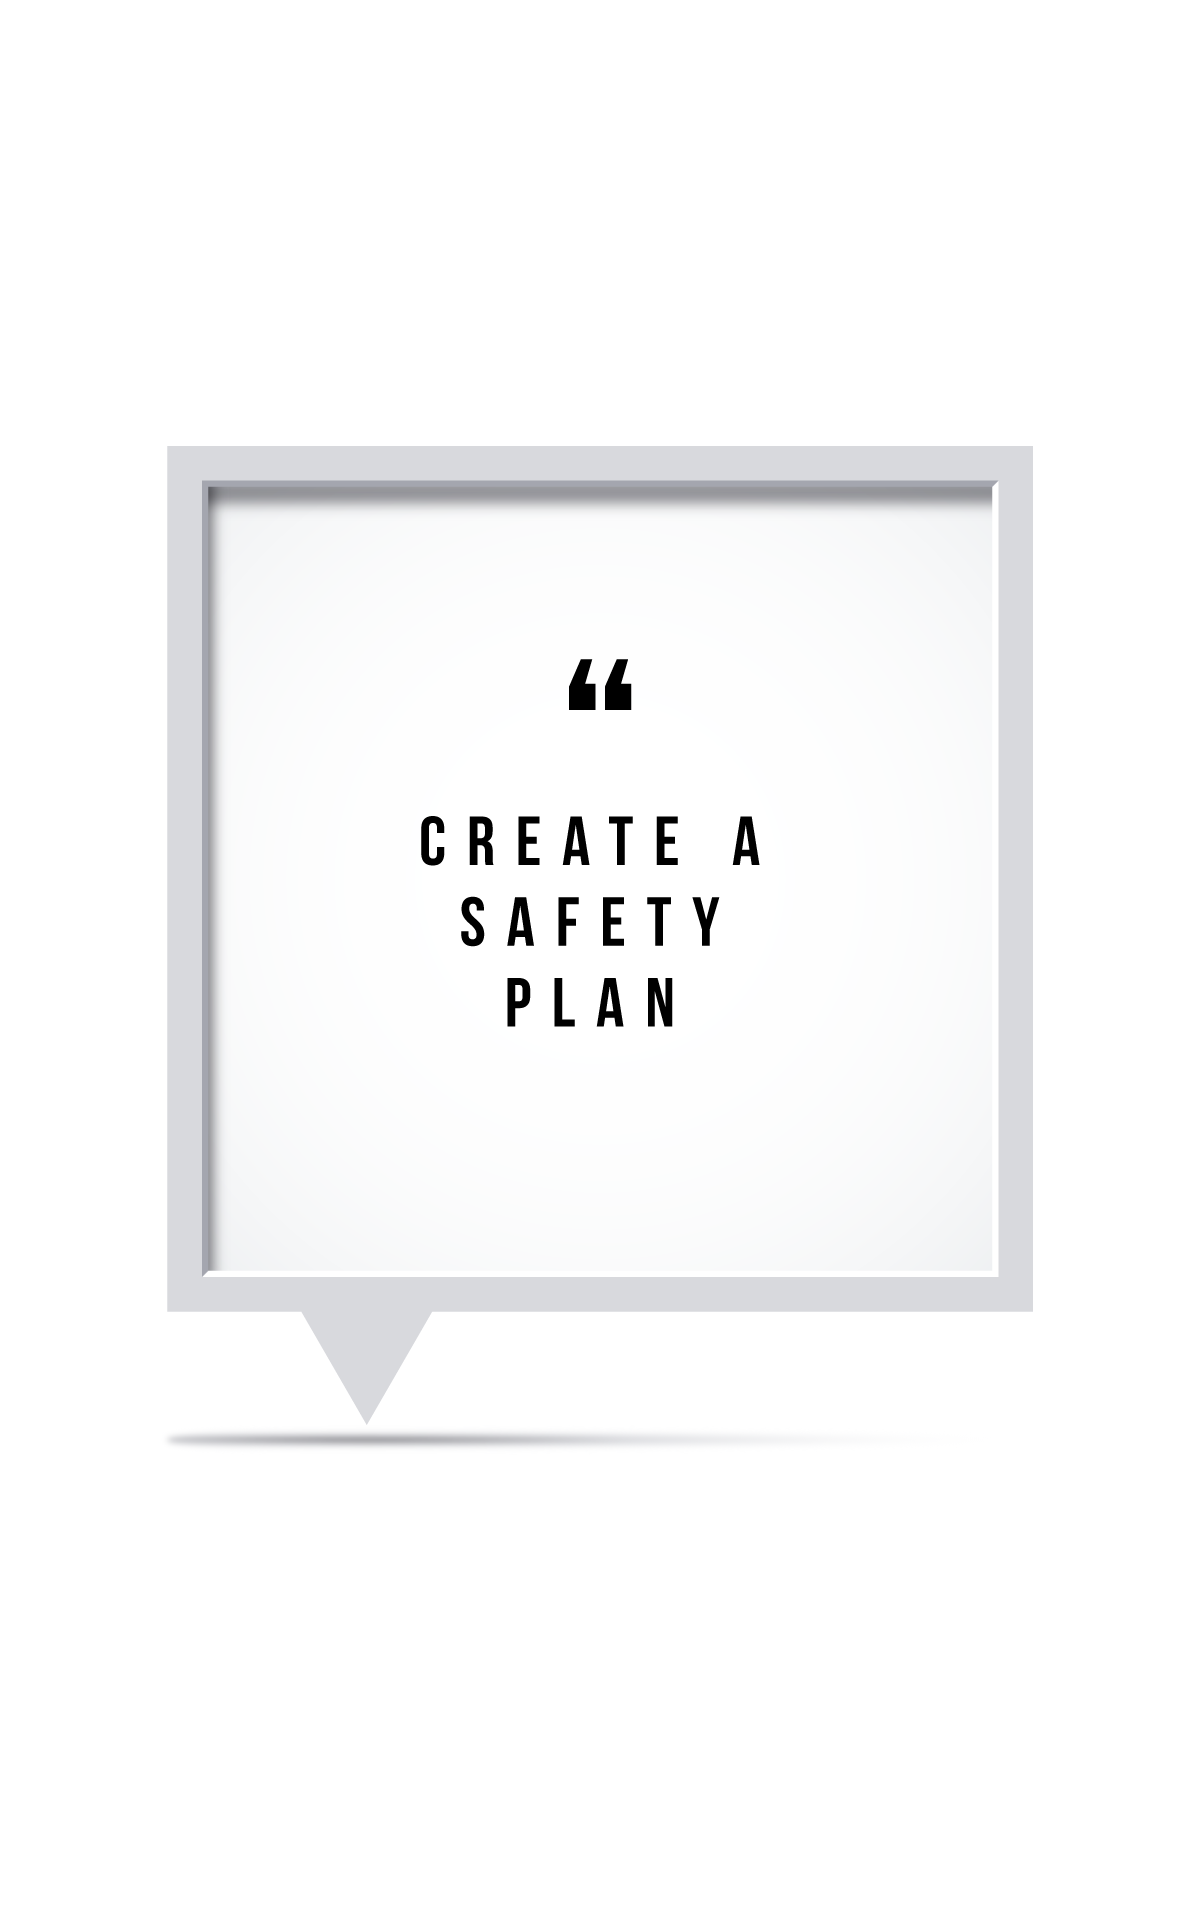 CREATE A SAFETY PLAN   Create a Safety Plan. What are your risks? Find coping strategies such as art, reading, writing, yoga. Reach out to family that can help or the call or text hotline. Call the suicide prevention line at 1-800-273-8255 and always keep your surroundings safe.